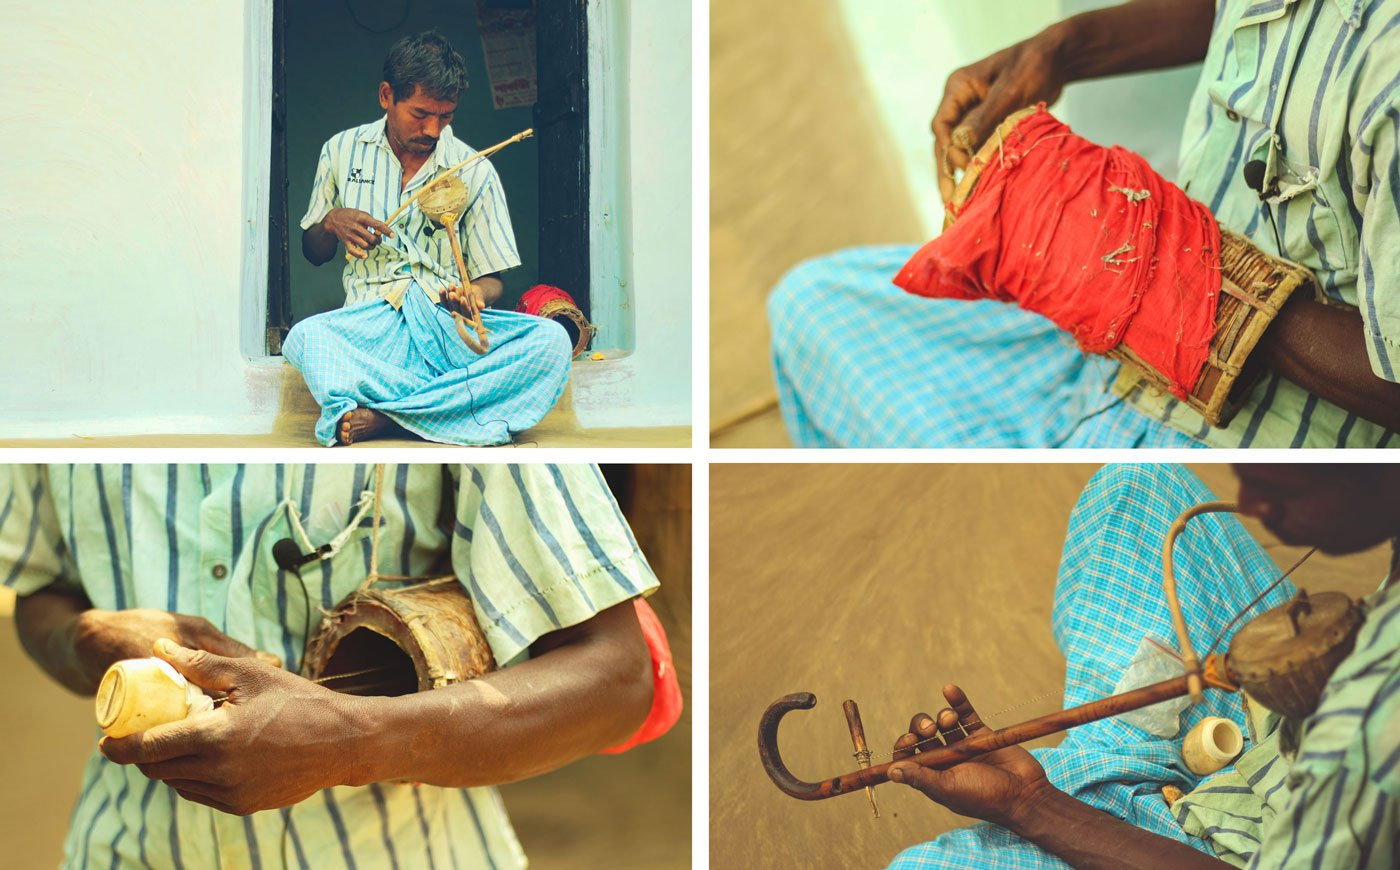 Top left: Ganesh Soren at his doorstep with his whimsical fantor banam. Top right, bottom left: Ganesh's signature gabgubi, with his son's dhol as the main part, along with an old Pond's container. Bottom right: His banam, made with coconut shell covered with hide, fastened to an umbrella handle with nuts and bolts